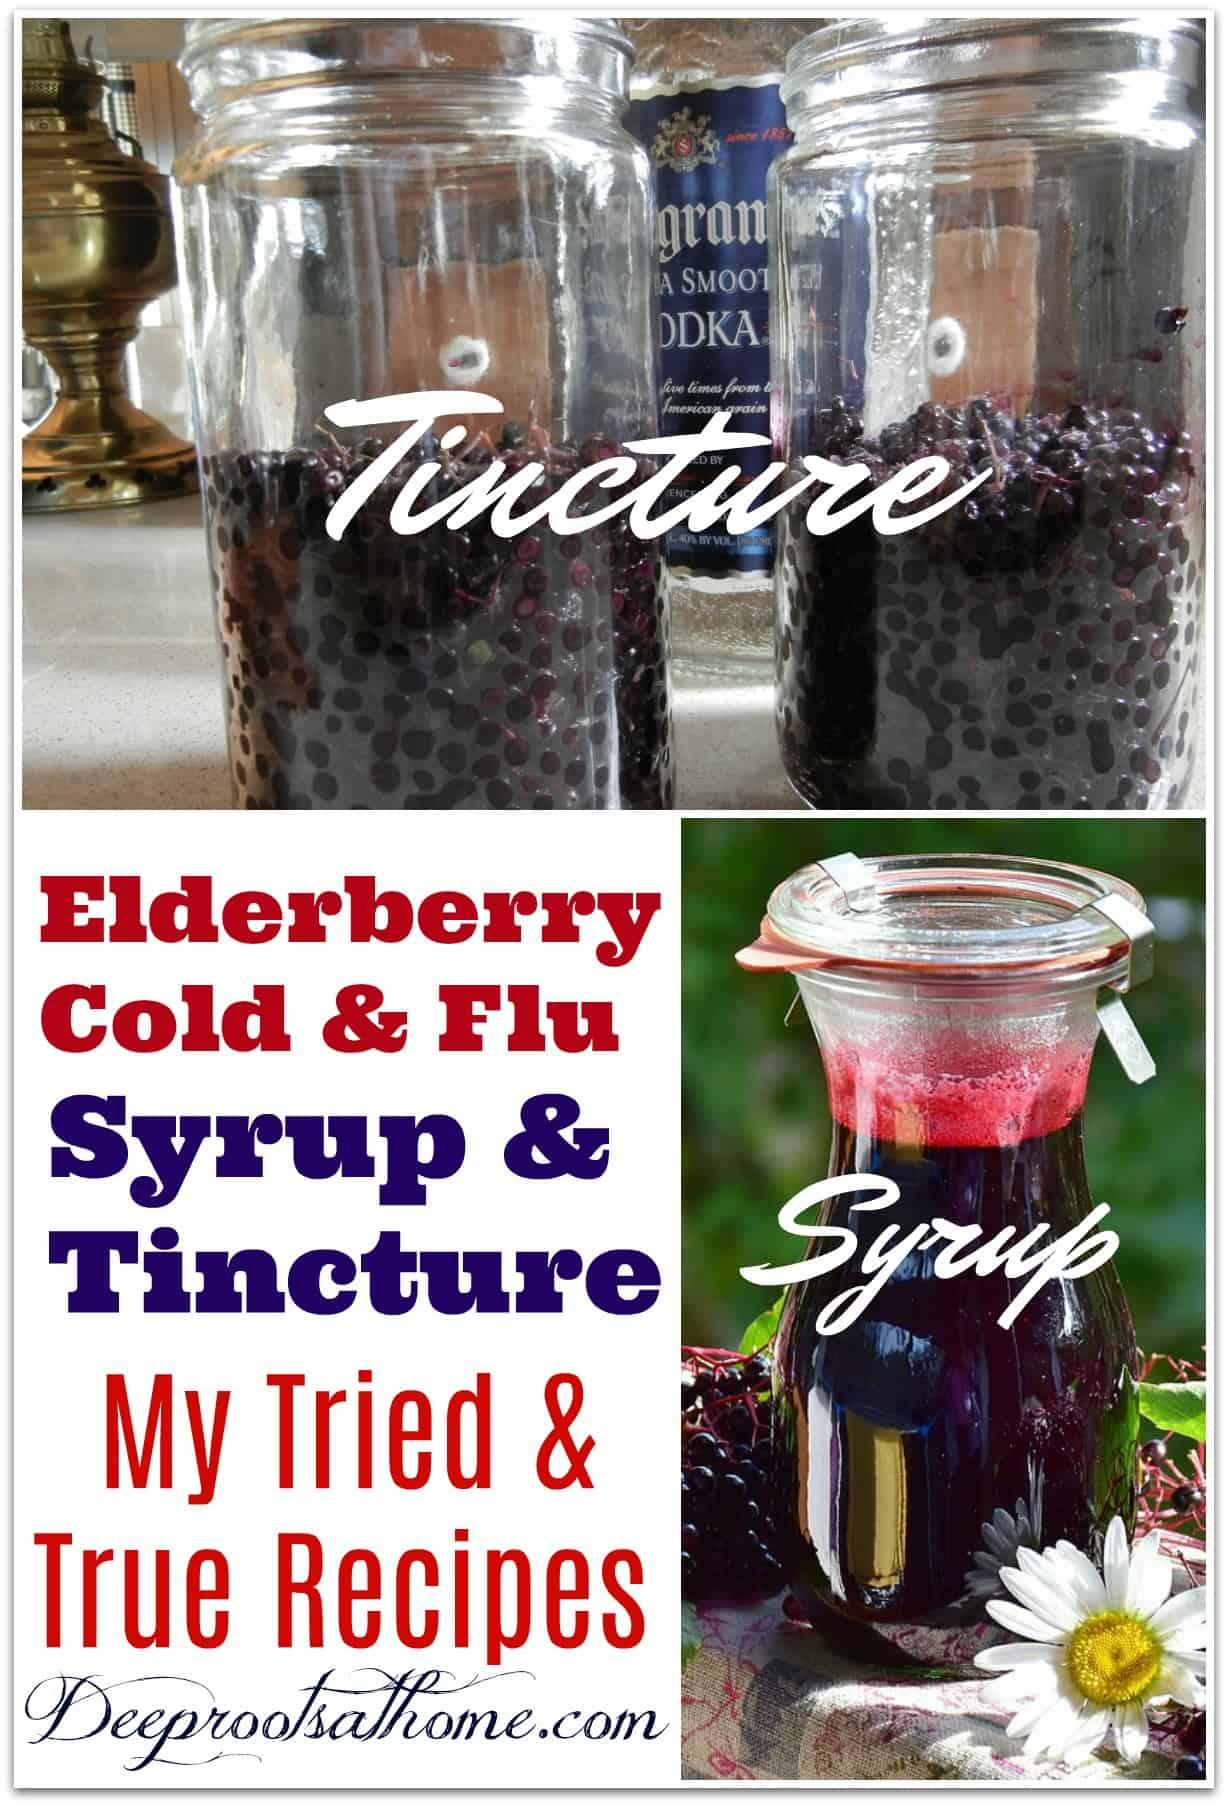 Elderberry Cold & Flu Syrup and Tincture: My Tried & True Recipes. Recipes for both elderberry tincture and elderberry syrup, an herbal medicine.